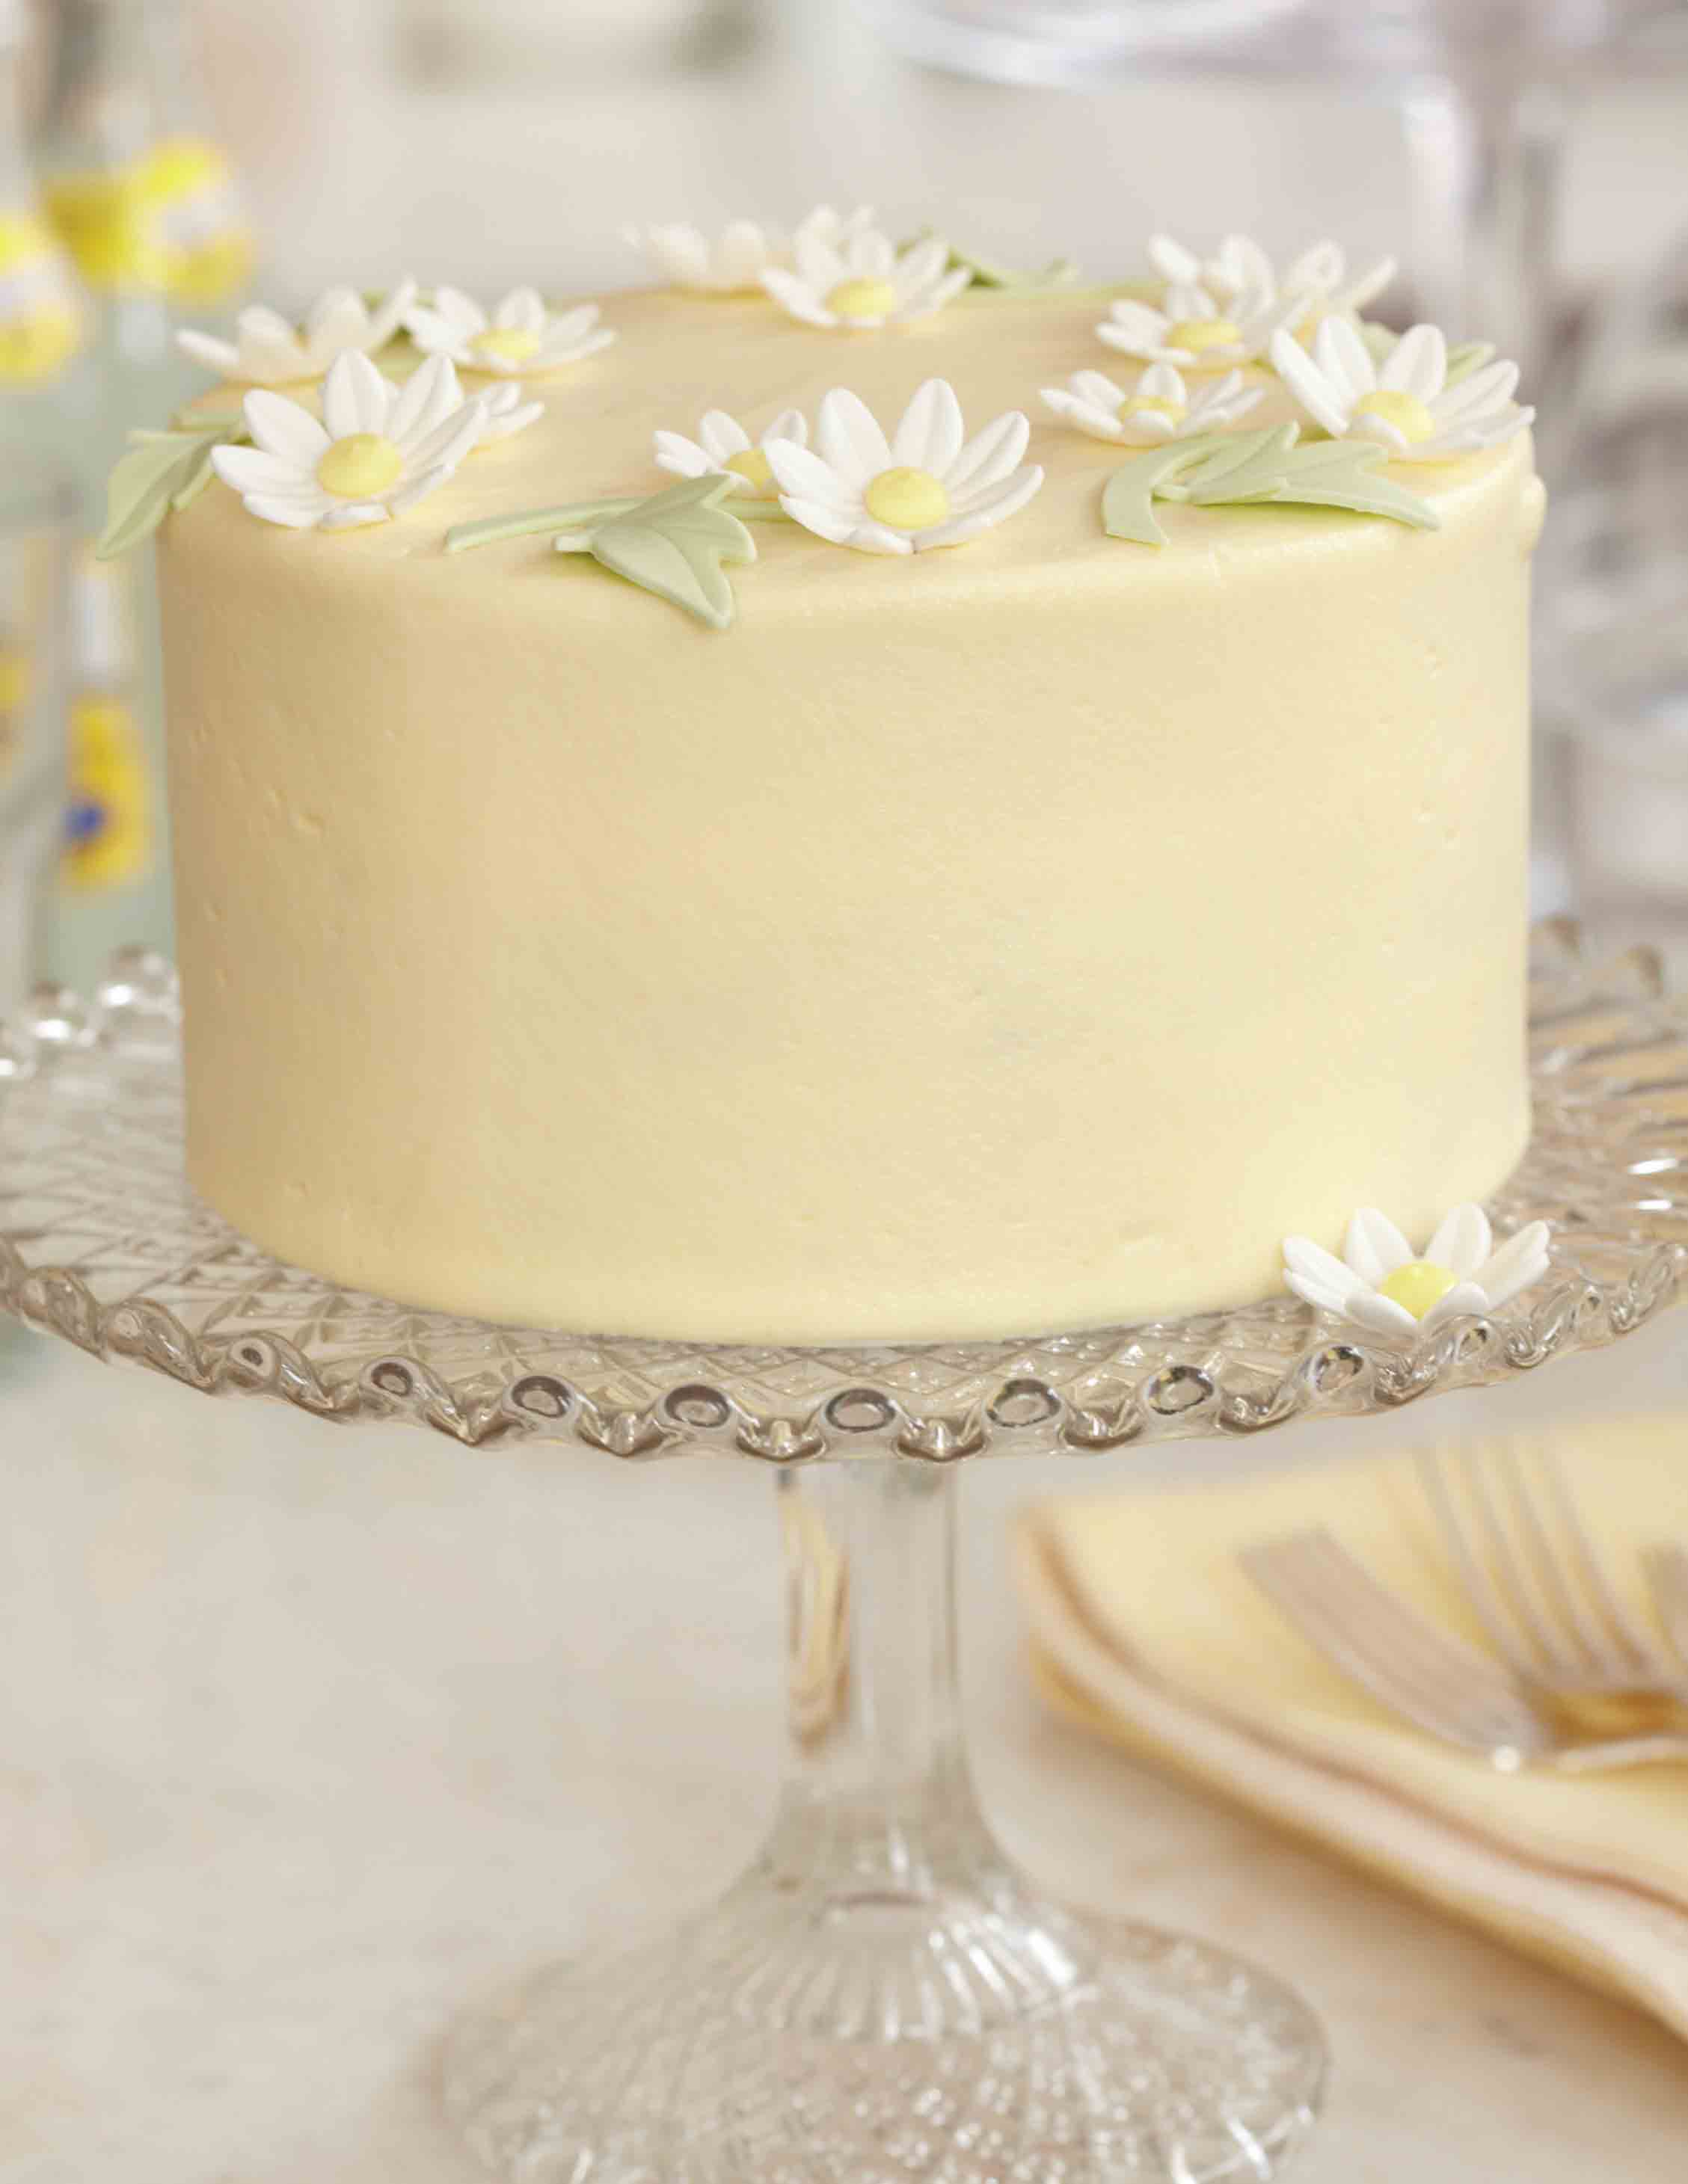 Lemon Limoncello cake